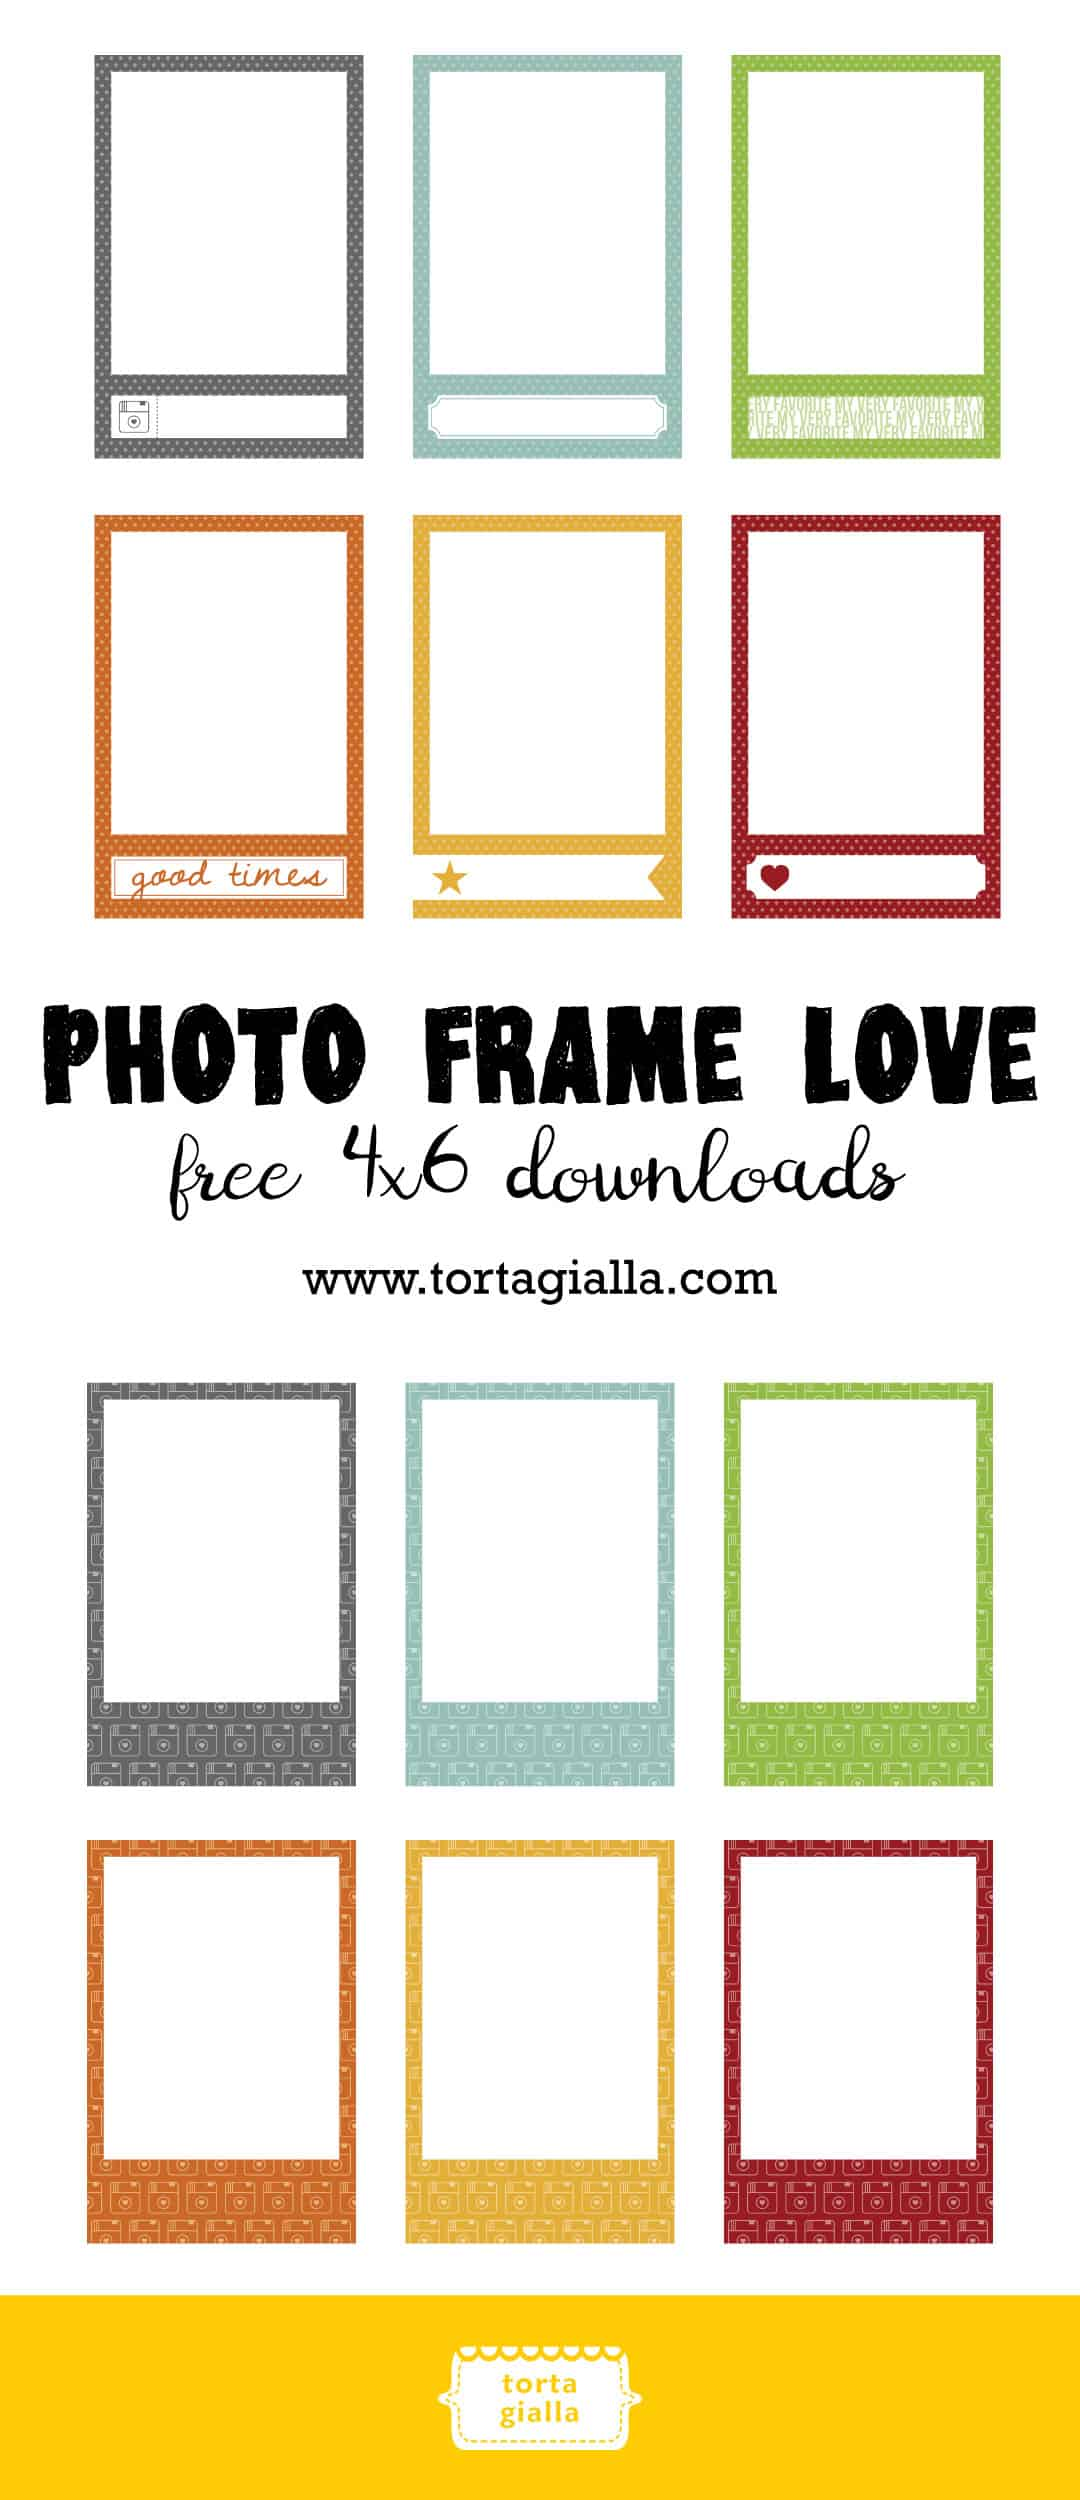 free 4x6 photo frame downloads on tortagialla.com